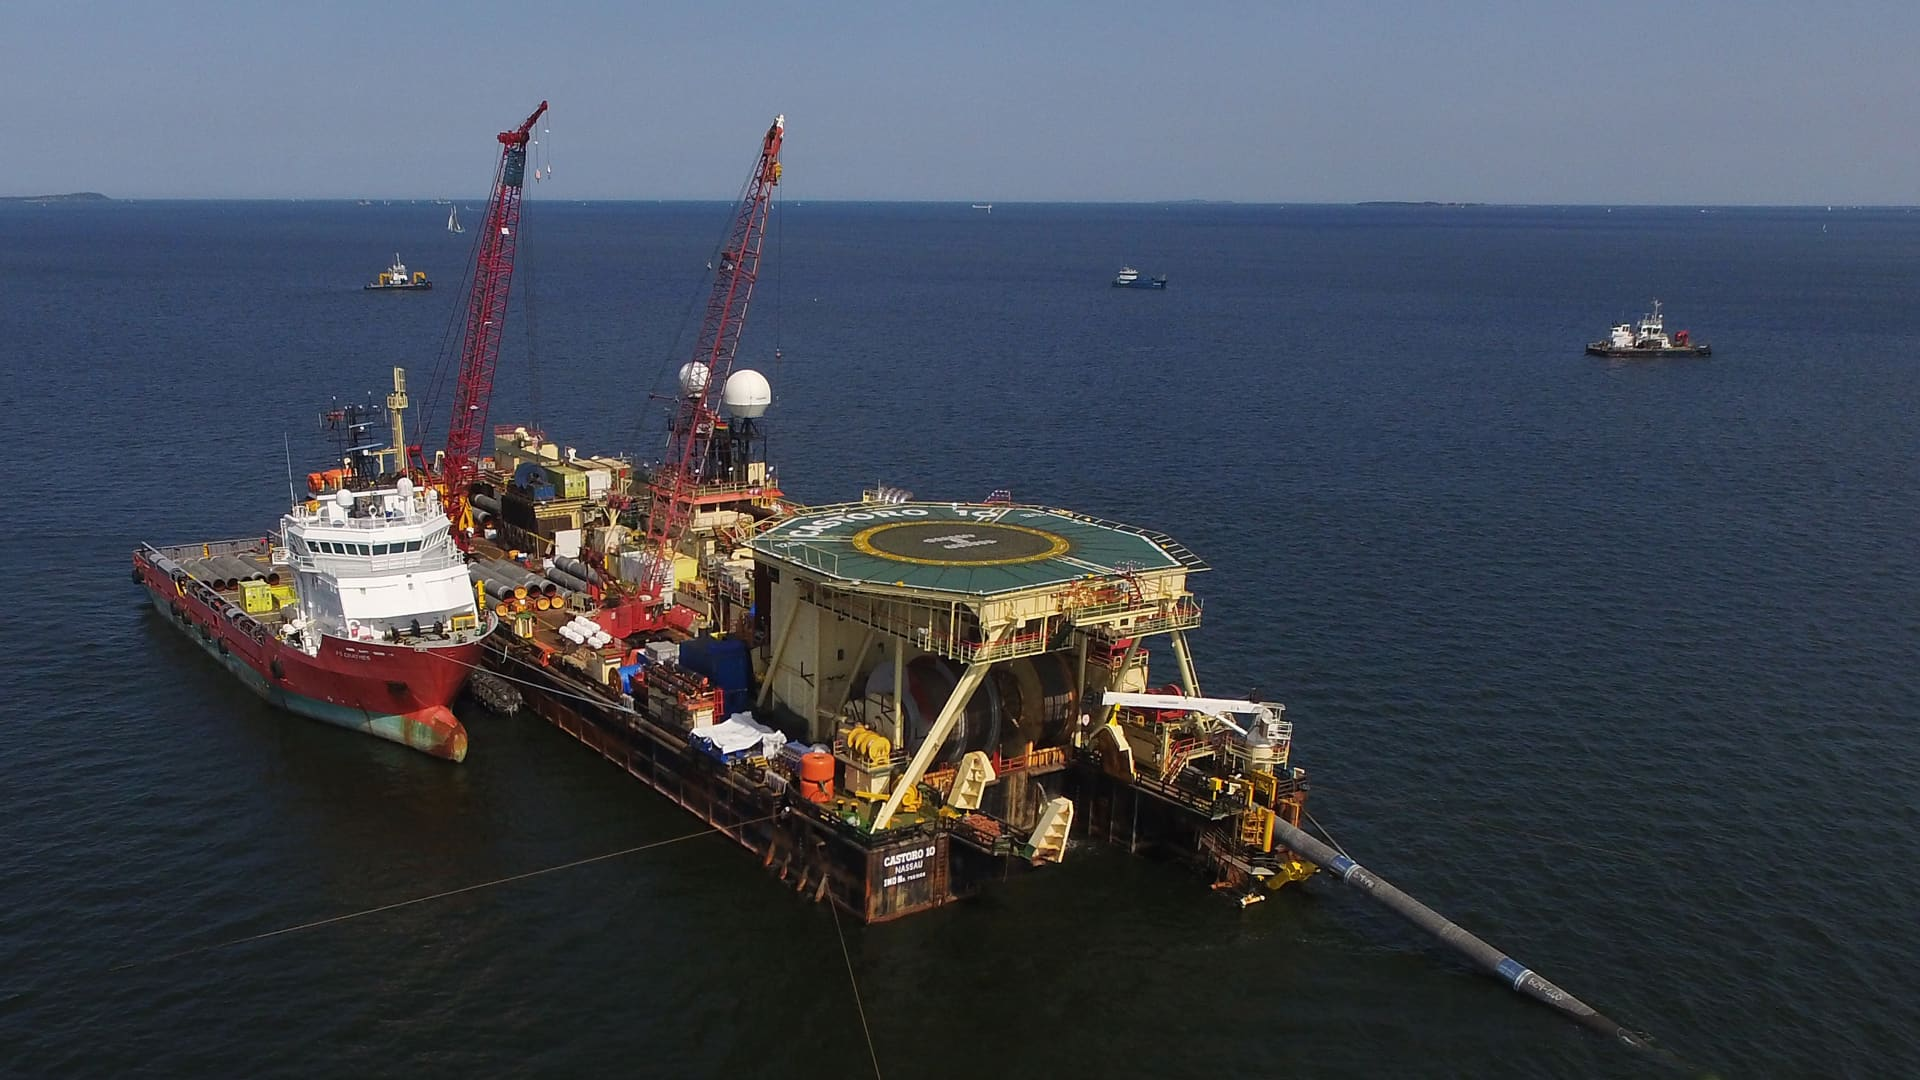 In this aerial view the Castoro 10 pipelay vessel lays concrete-coated pipe for the Nord Stream 2 gas pipeline onto the seabed of the Baltic Sea on August 16, 2018 near Lubmin, Germany.